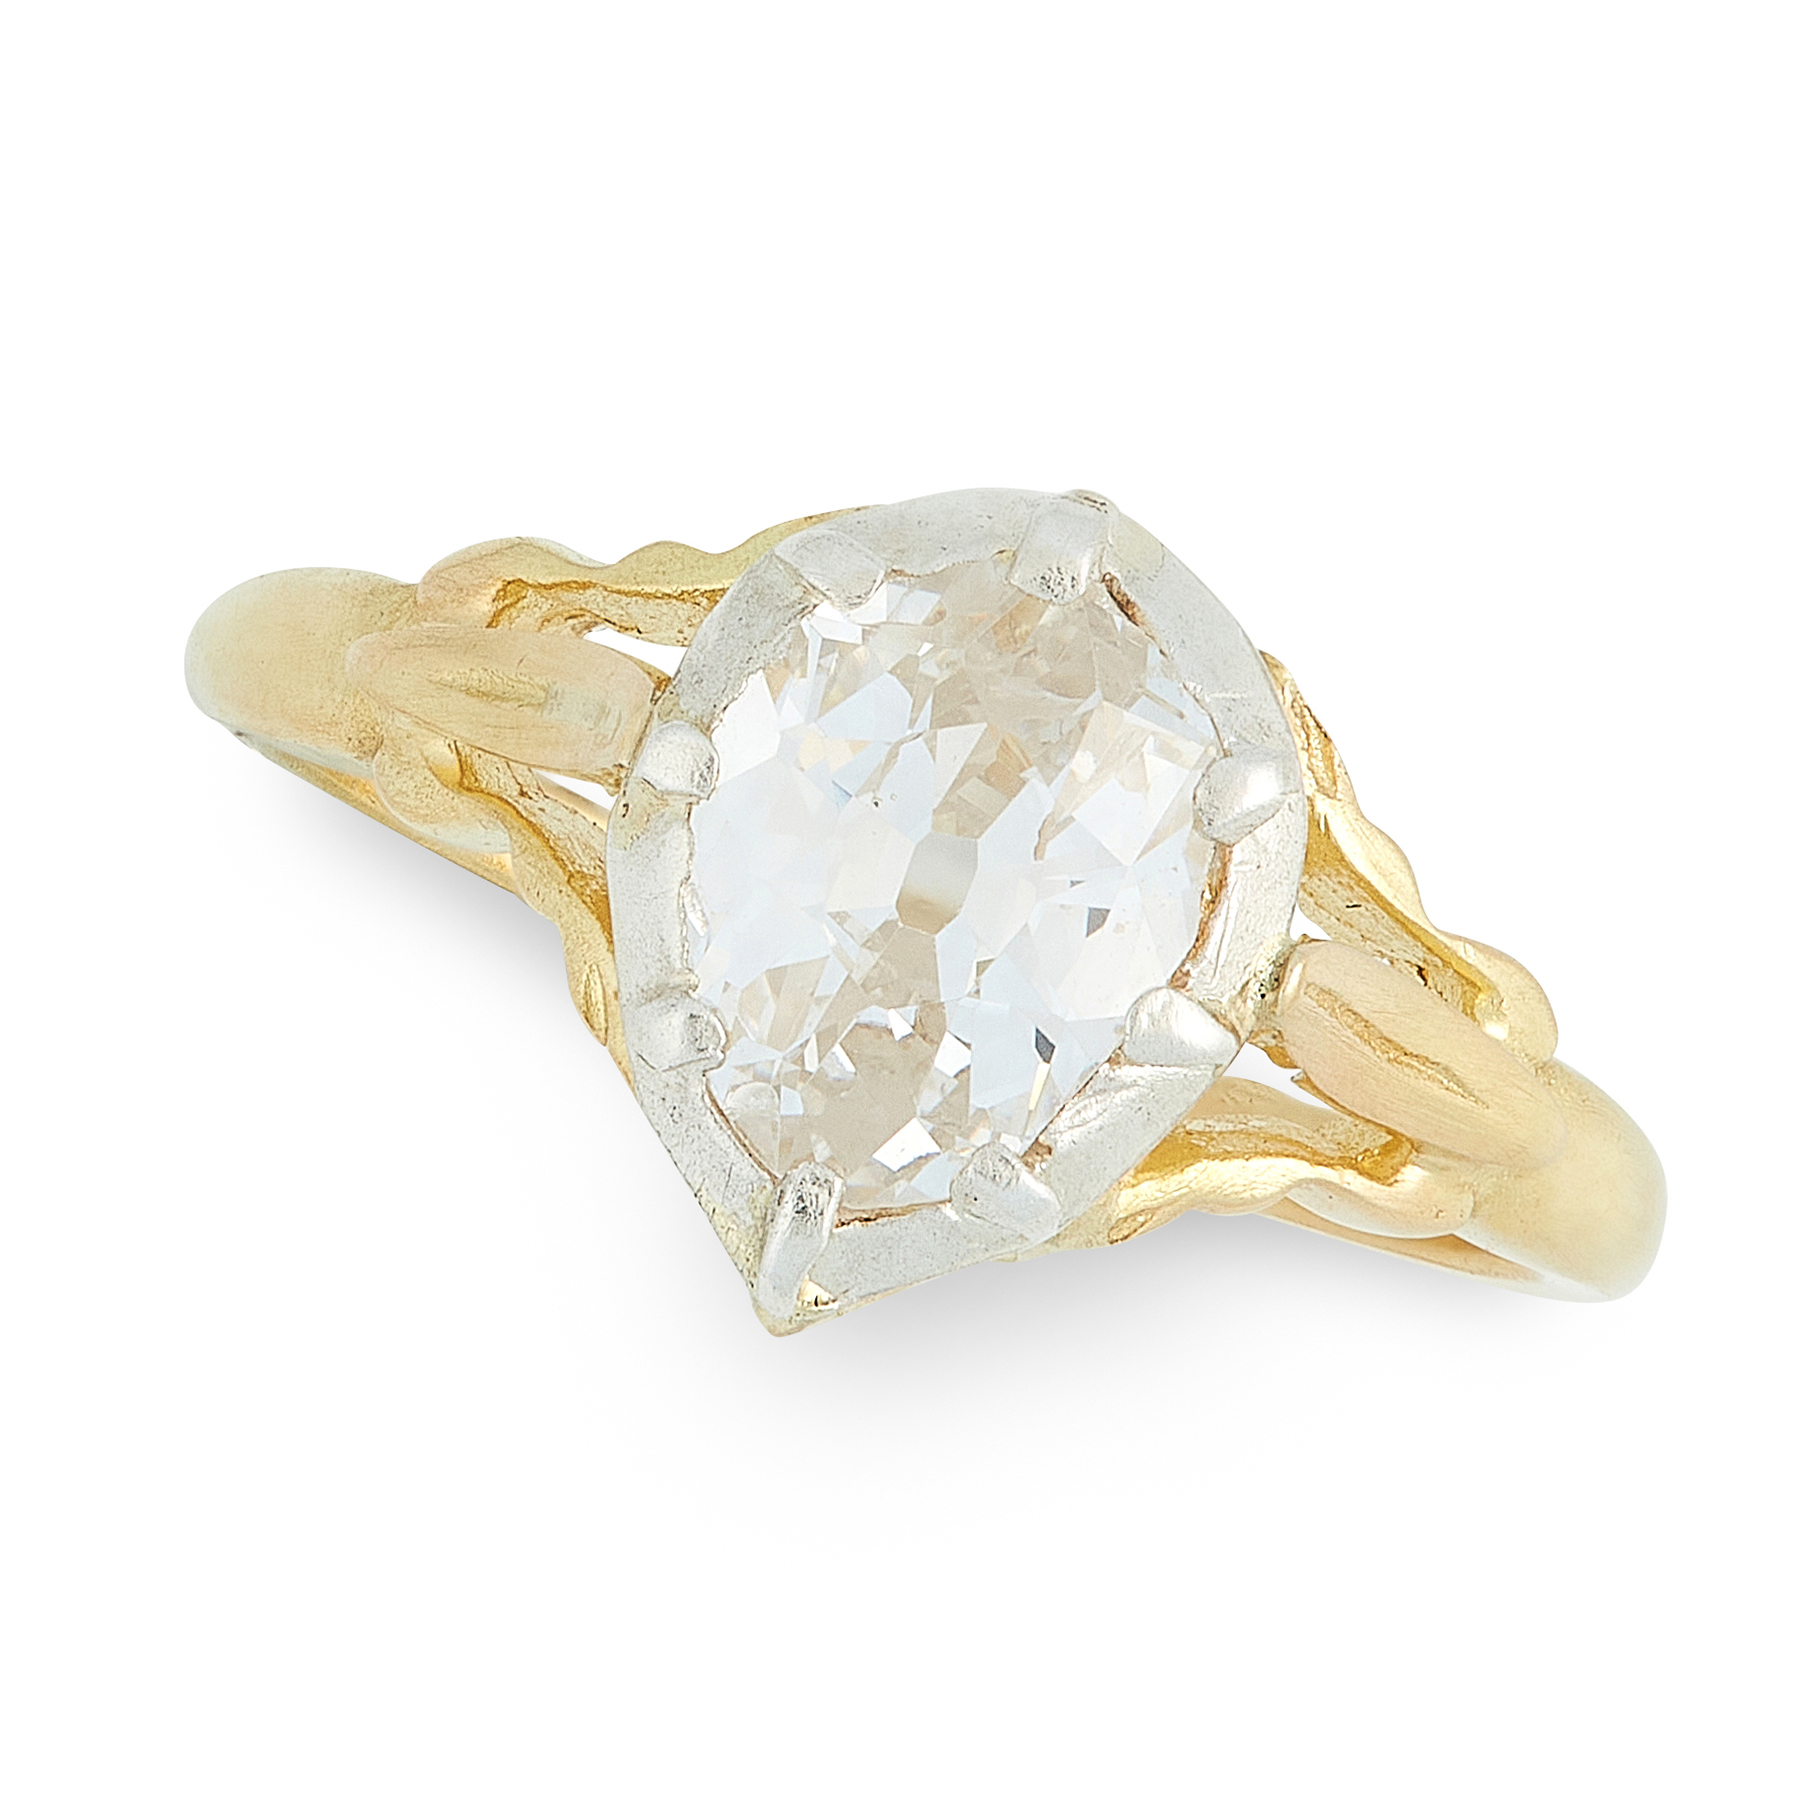 A DIAMOND DRESS RING in high carat yellow gold and silver, in the Georgian style, set with a pear